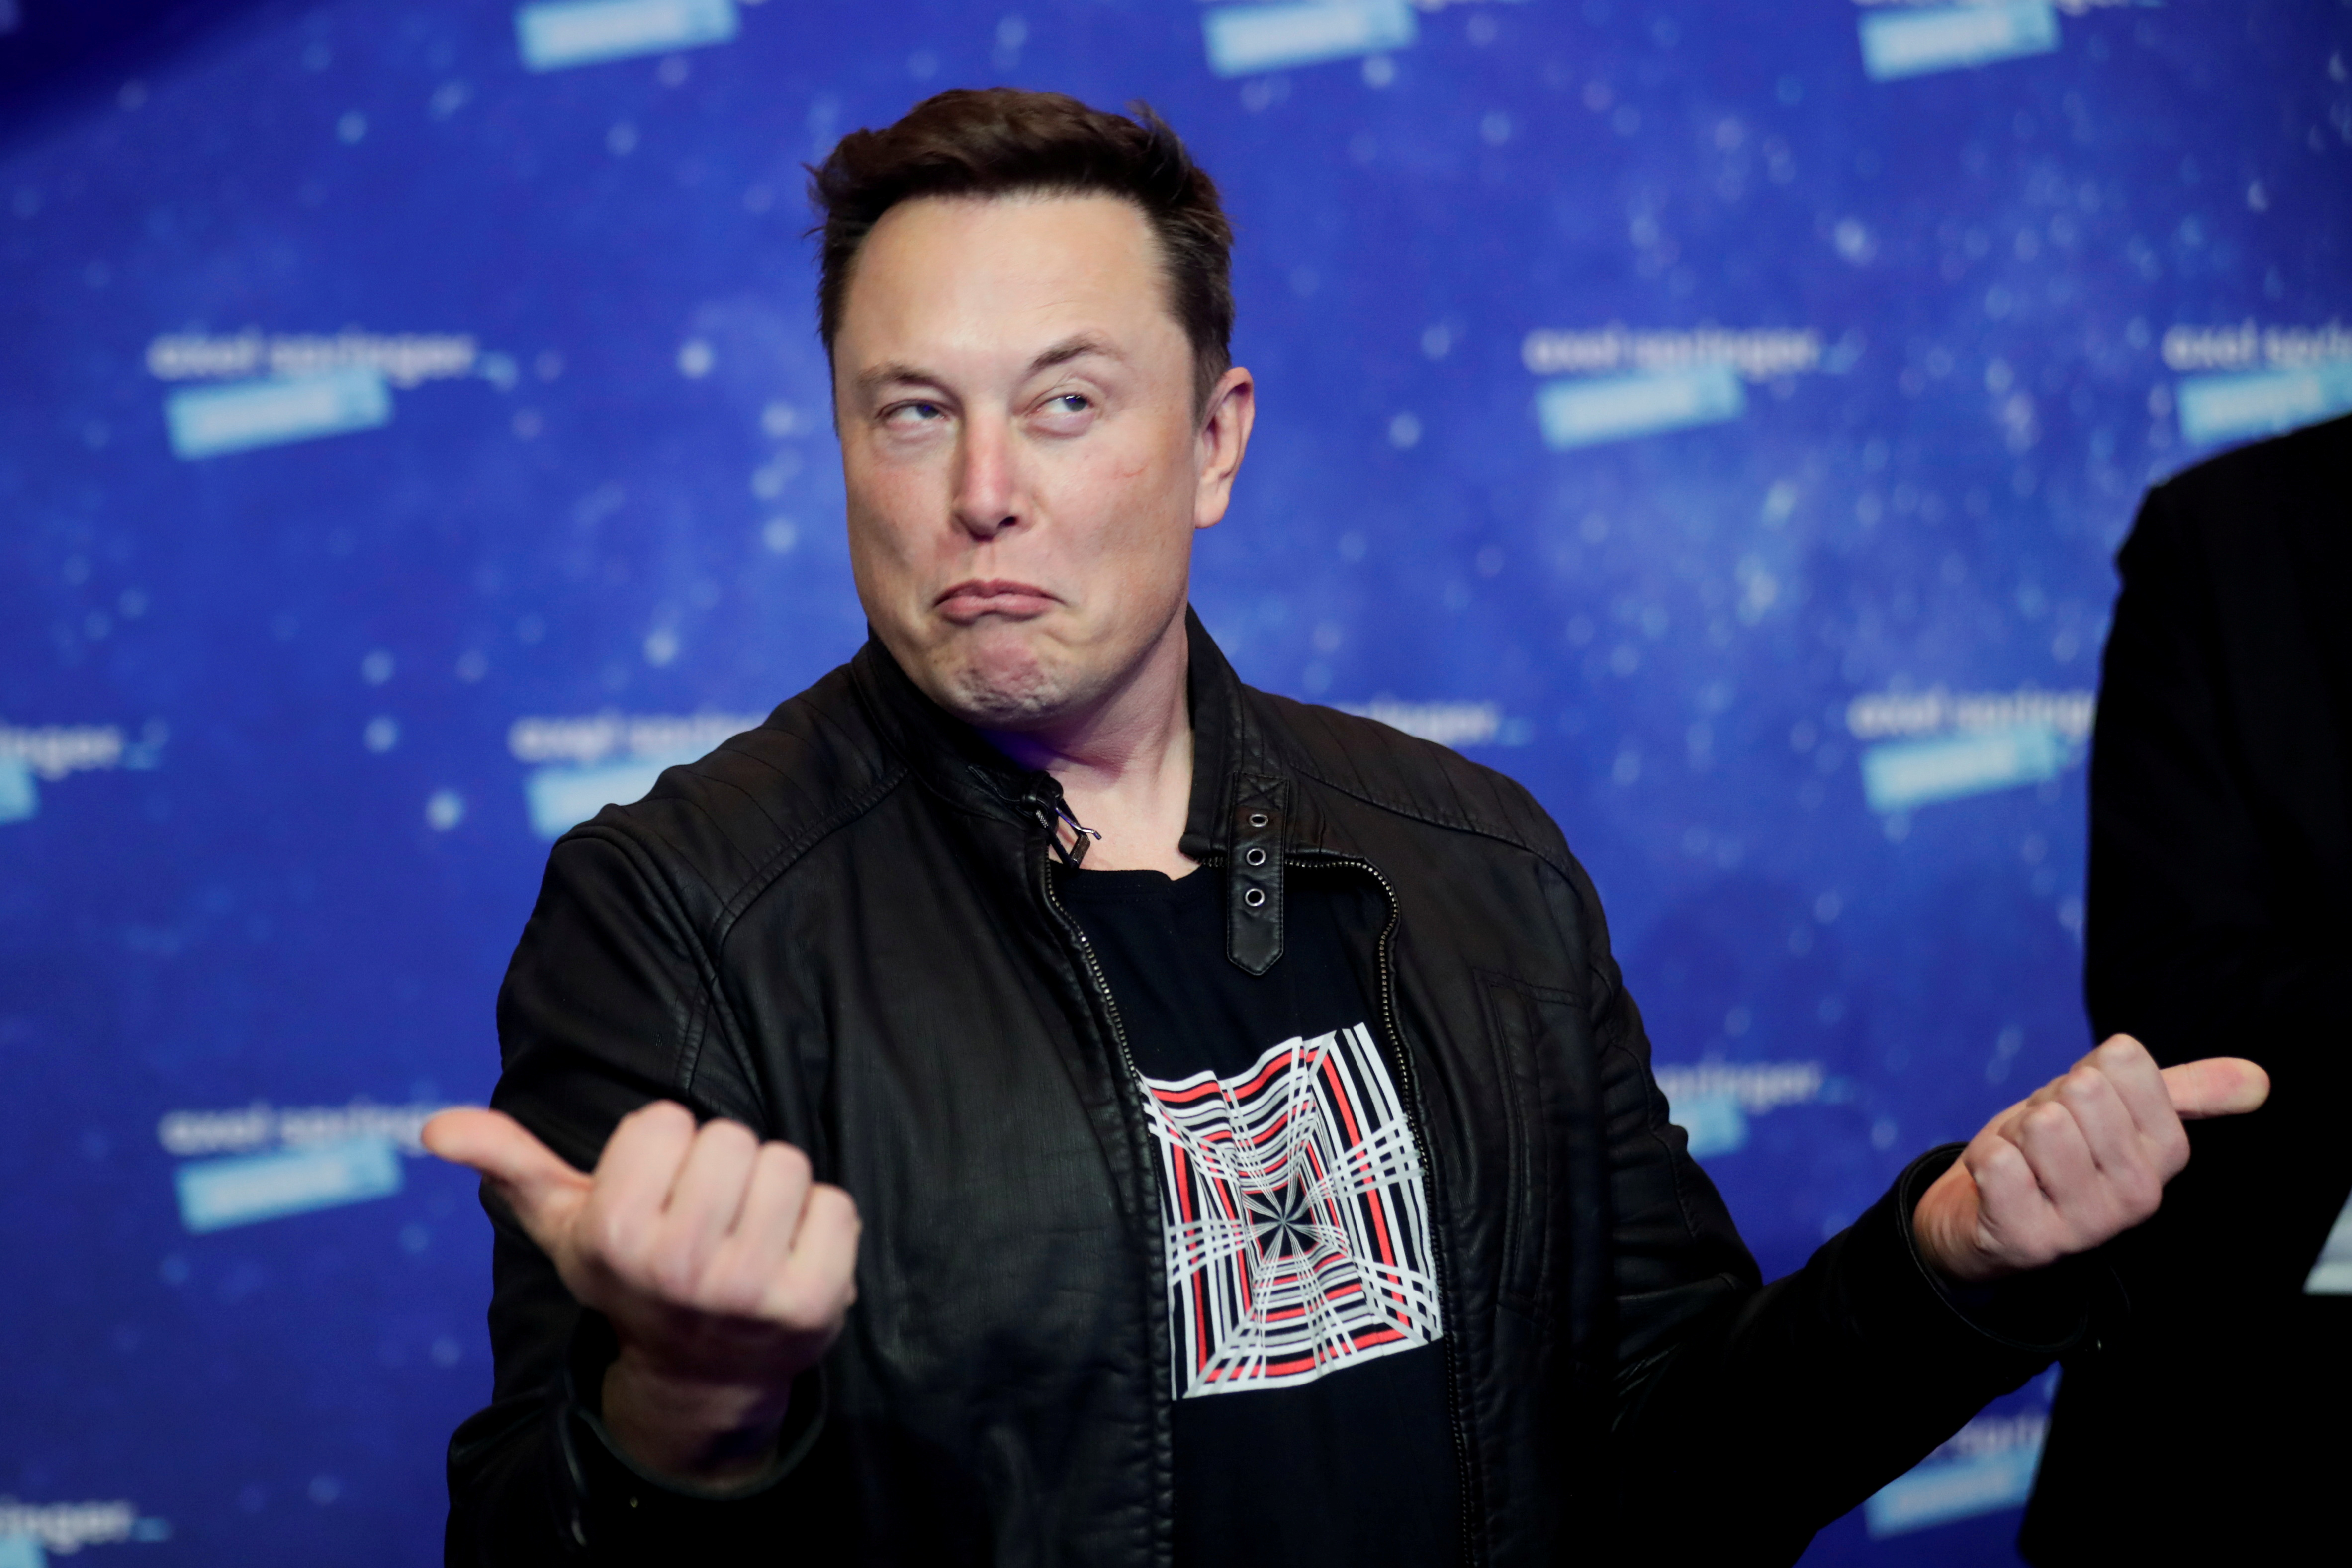 SpaceX owner and Tesla CEO Elon Musk grimaces after arriving on the red carpet for the Axel Springer award, in Berlin, Germany, December 1, 2020. REUTERS/Hannibal Hanschke/Pool/File Photo